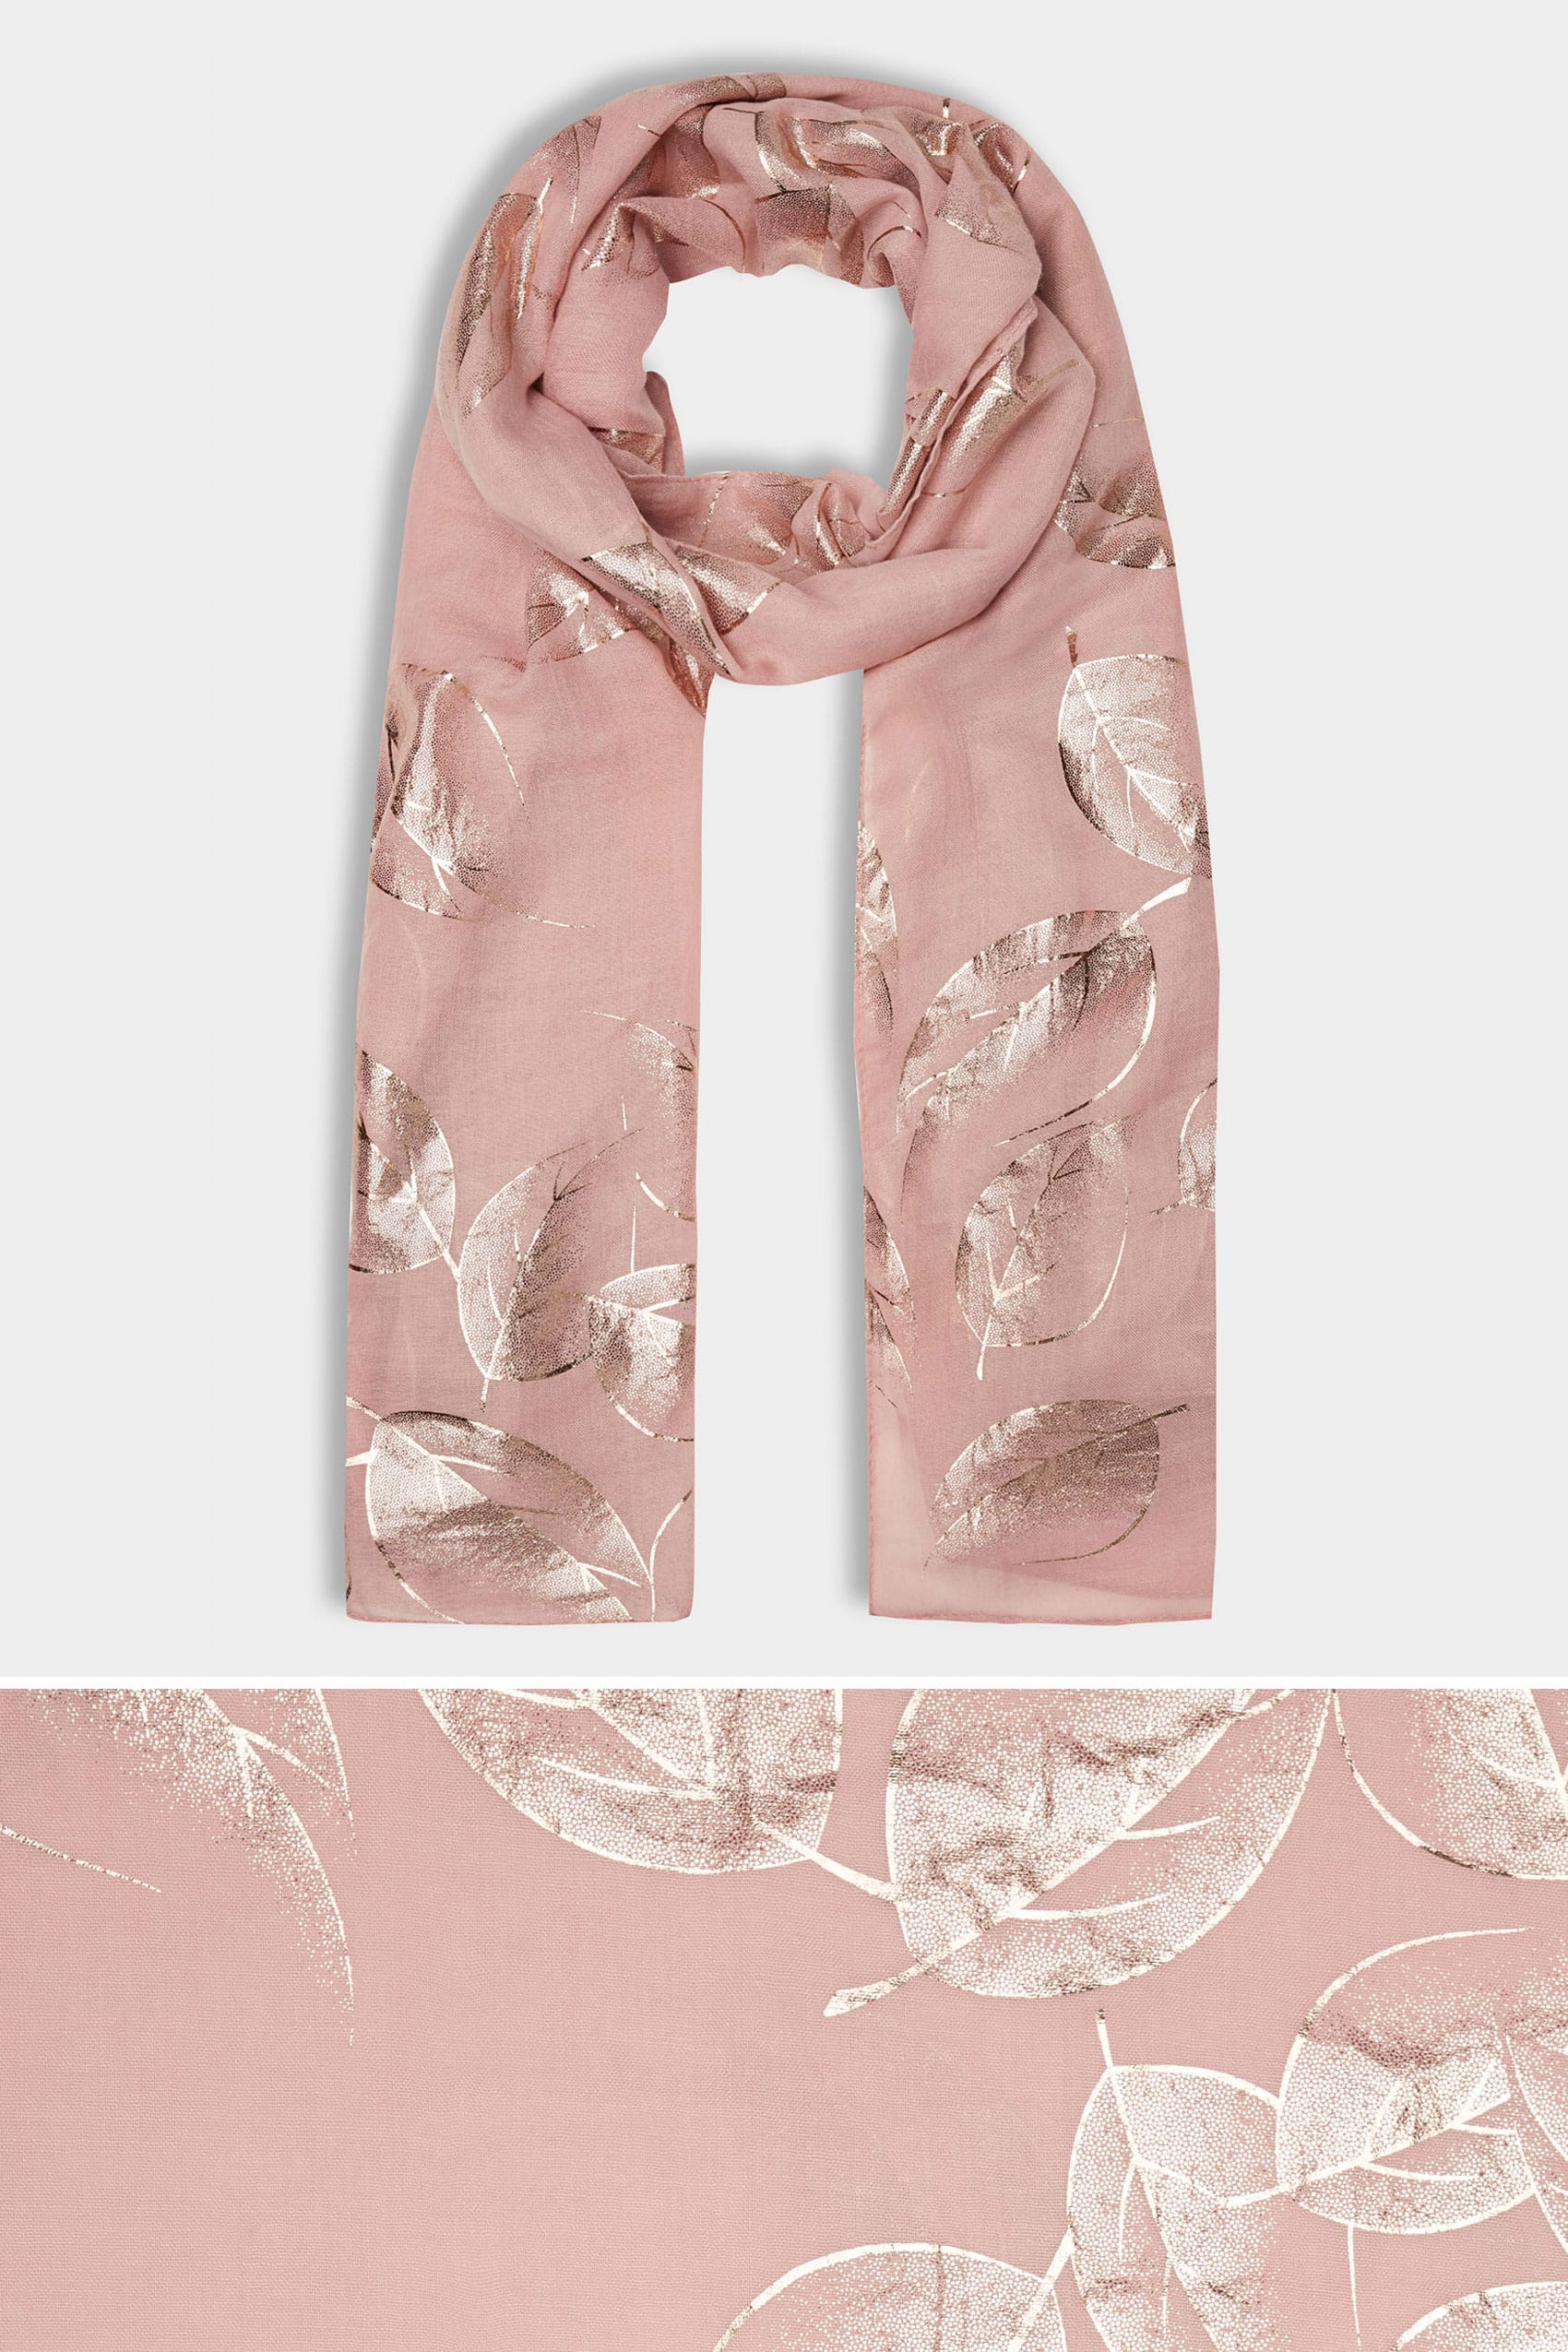 online store terms and conditions template - pink foil leaf print scarf